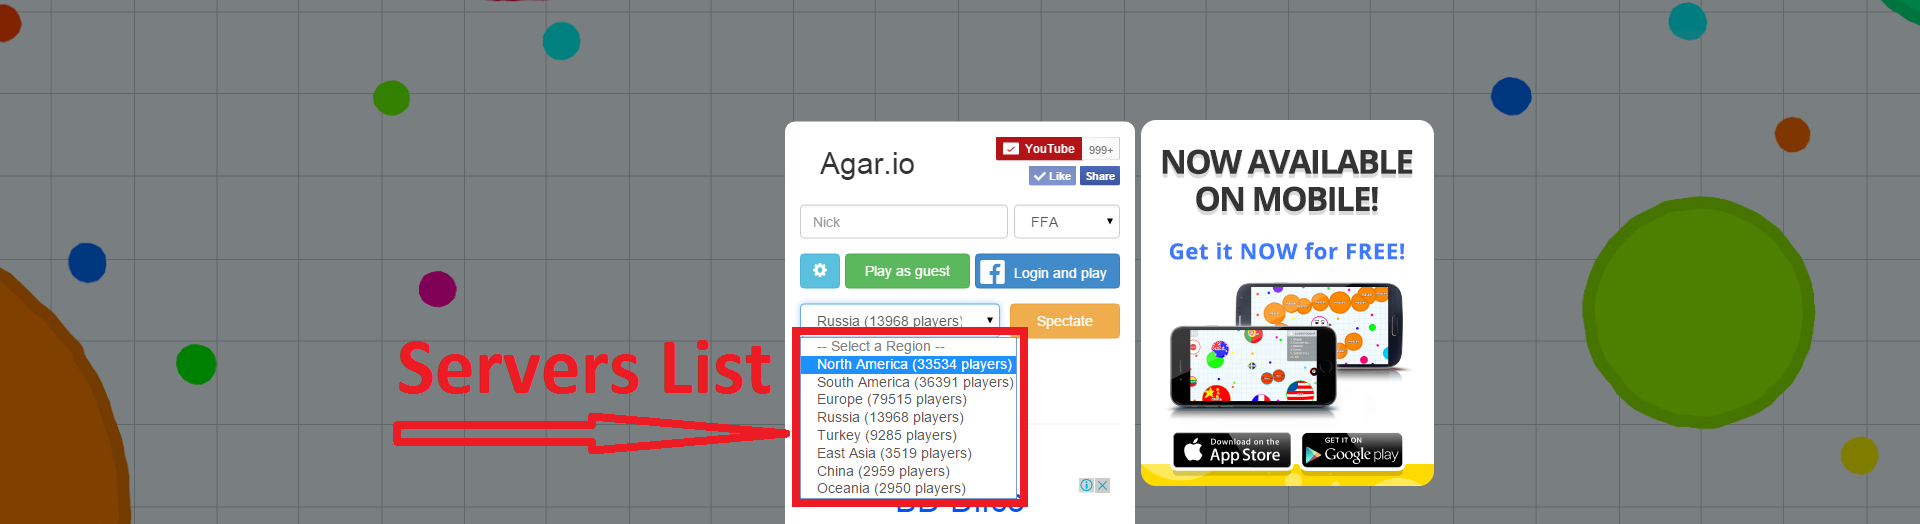 How to fix agario lags in Chrome and other browsers?